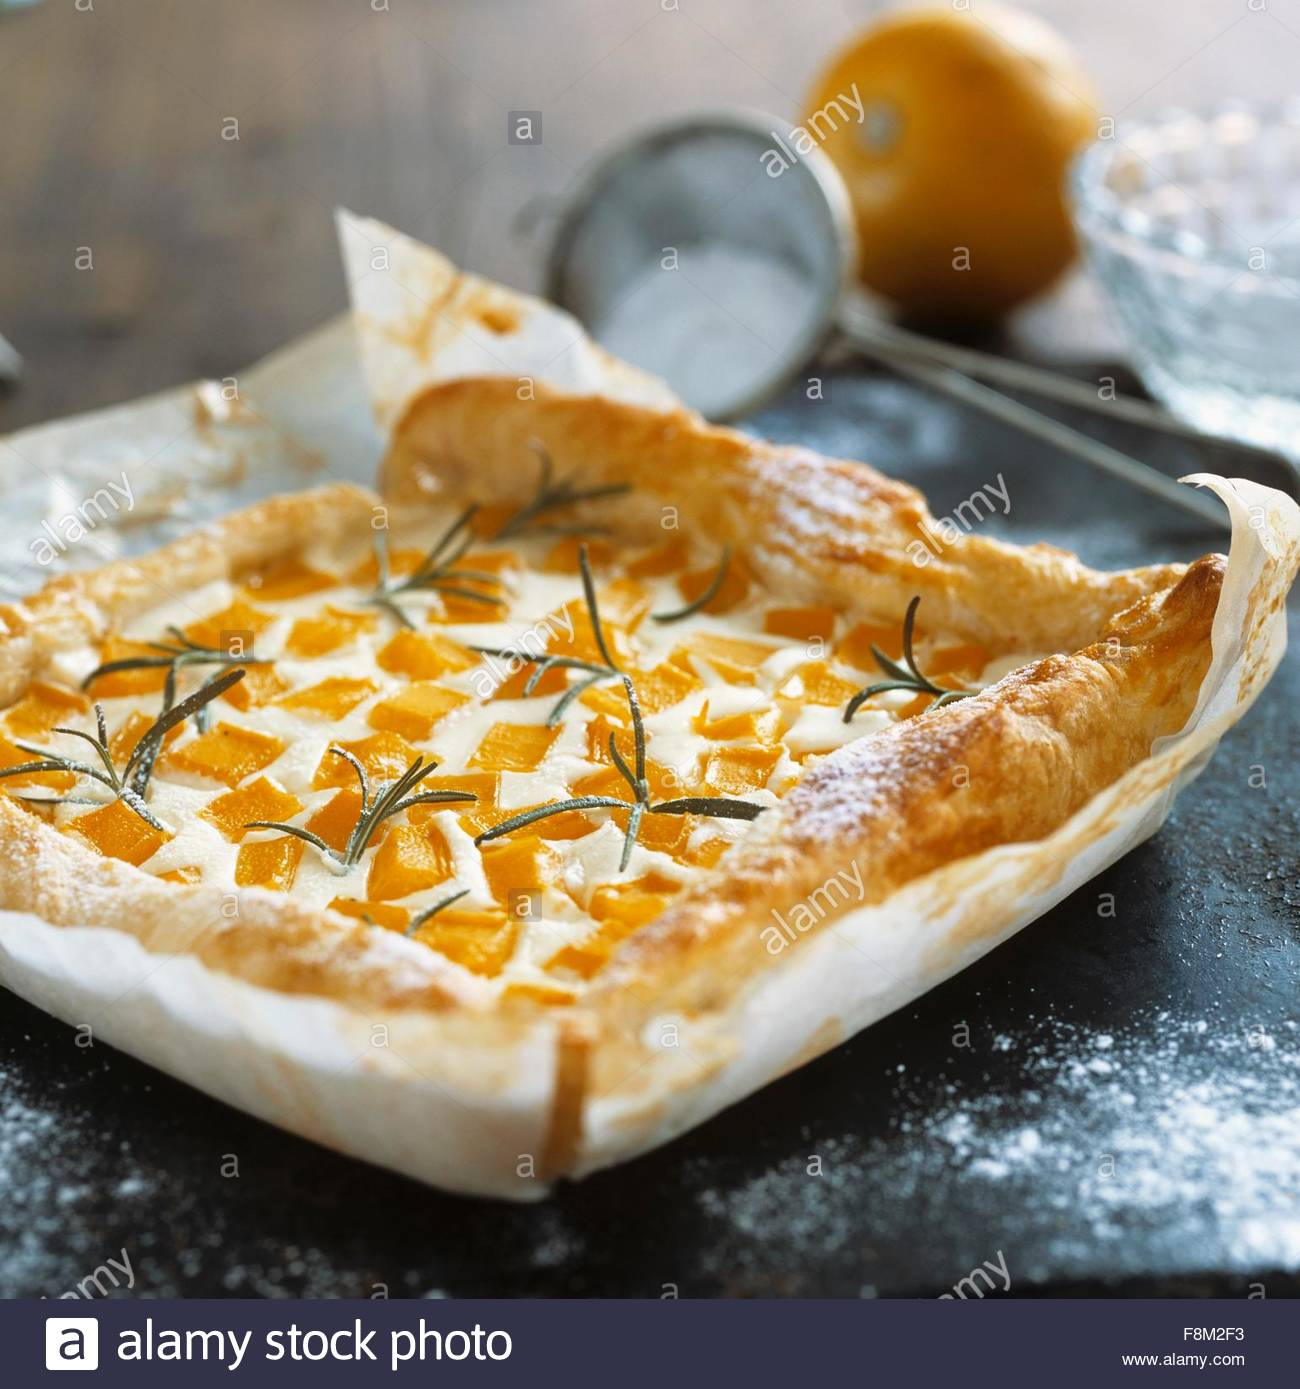 Quark and pumpkin tart with rosemary on baking parchment - Stock Image